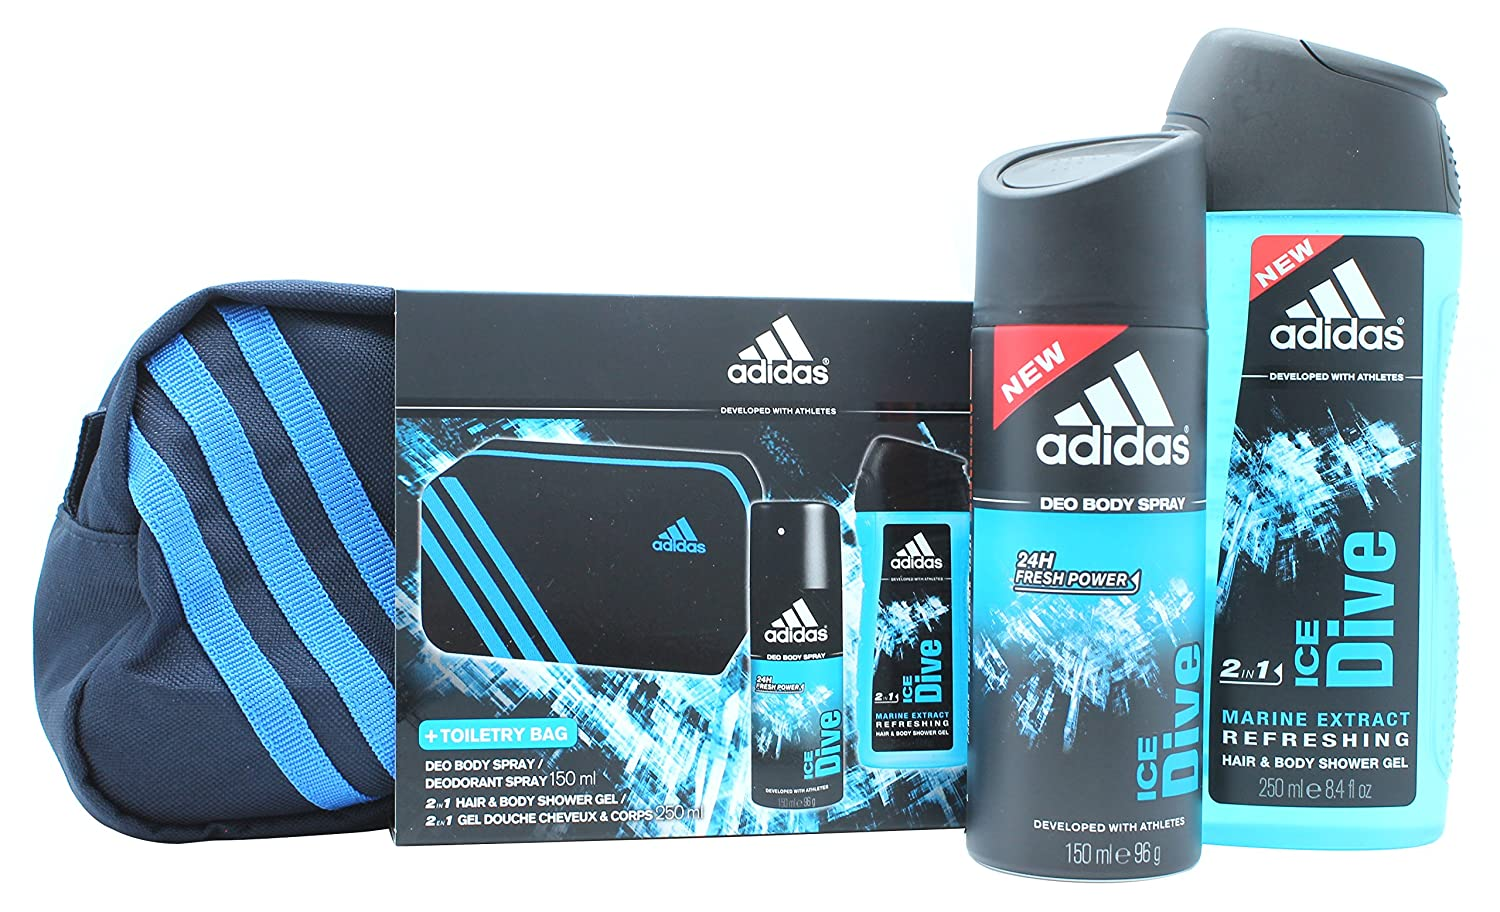 706bdd9a2d11 Adidas Ice Dive Gift Set 150ml Deodorant Body Spray + 250ml Shower Gel + Toiletry  Bag  Amazon.co.uk  Health   Personal Care